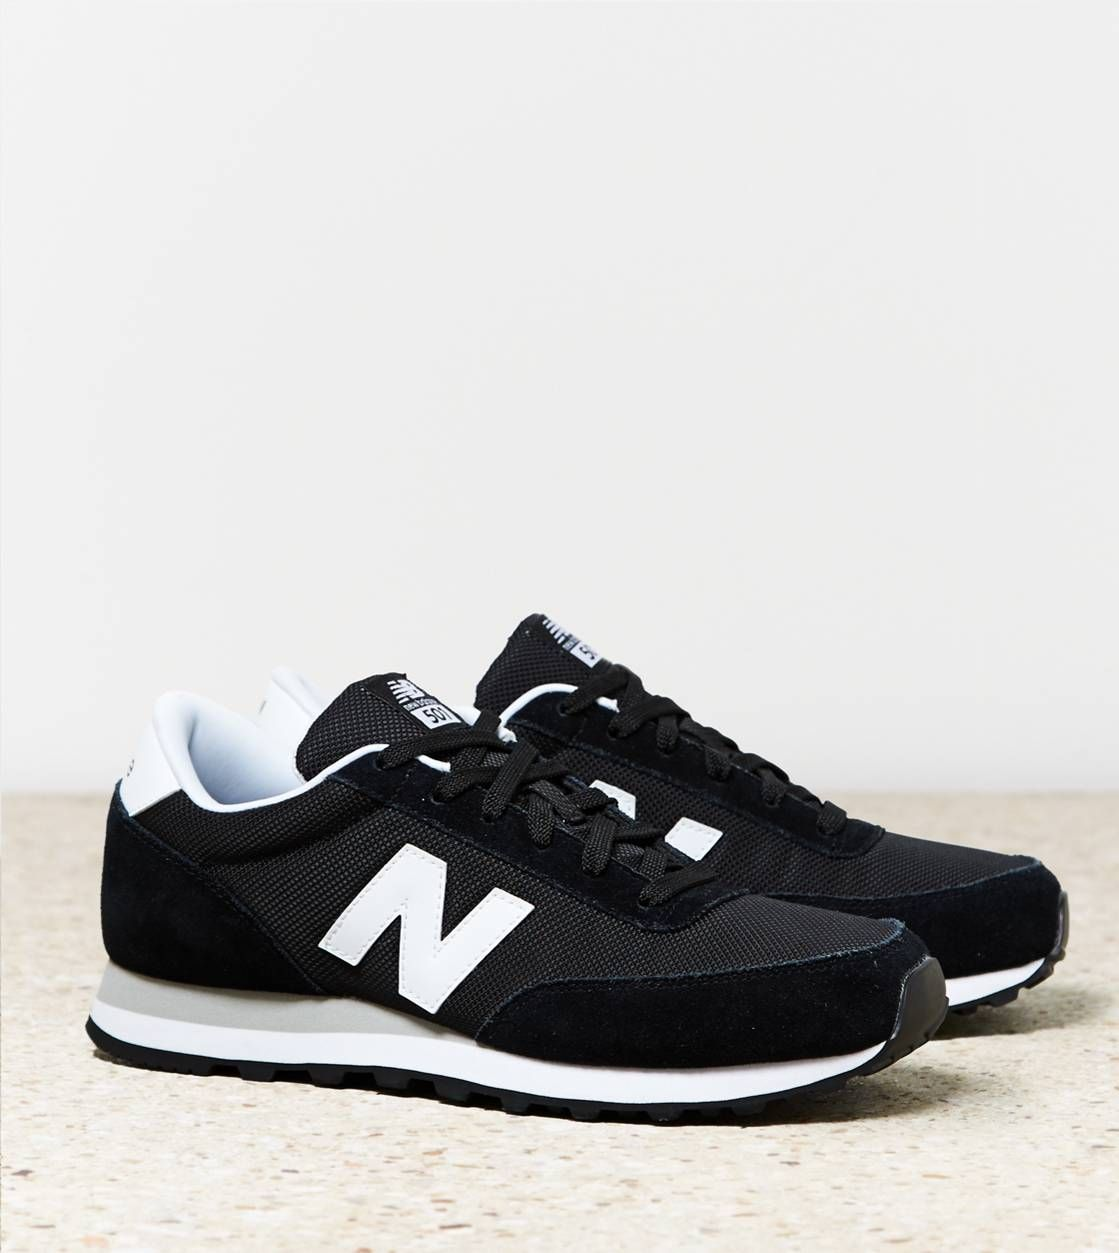 New Balance 501 Sneaker | sneaks in 2019 | Trendy womens